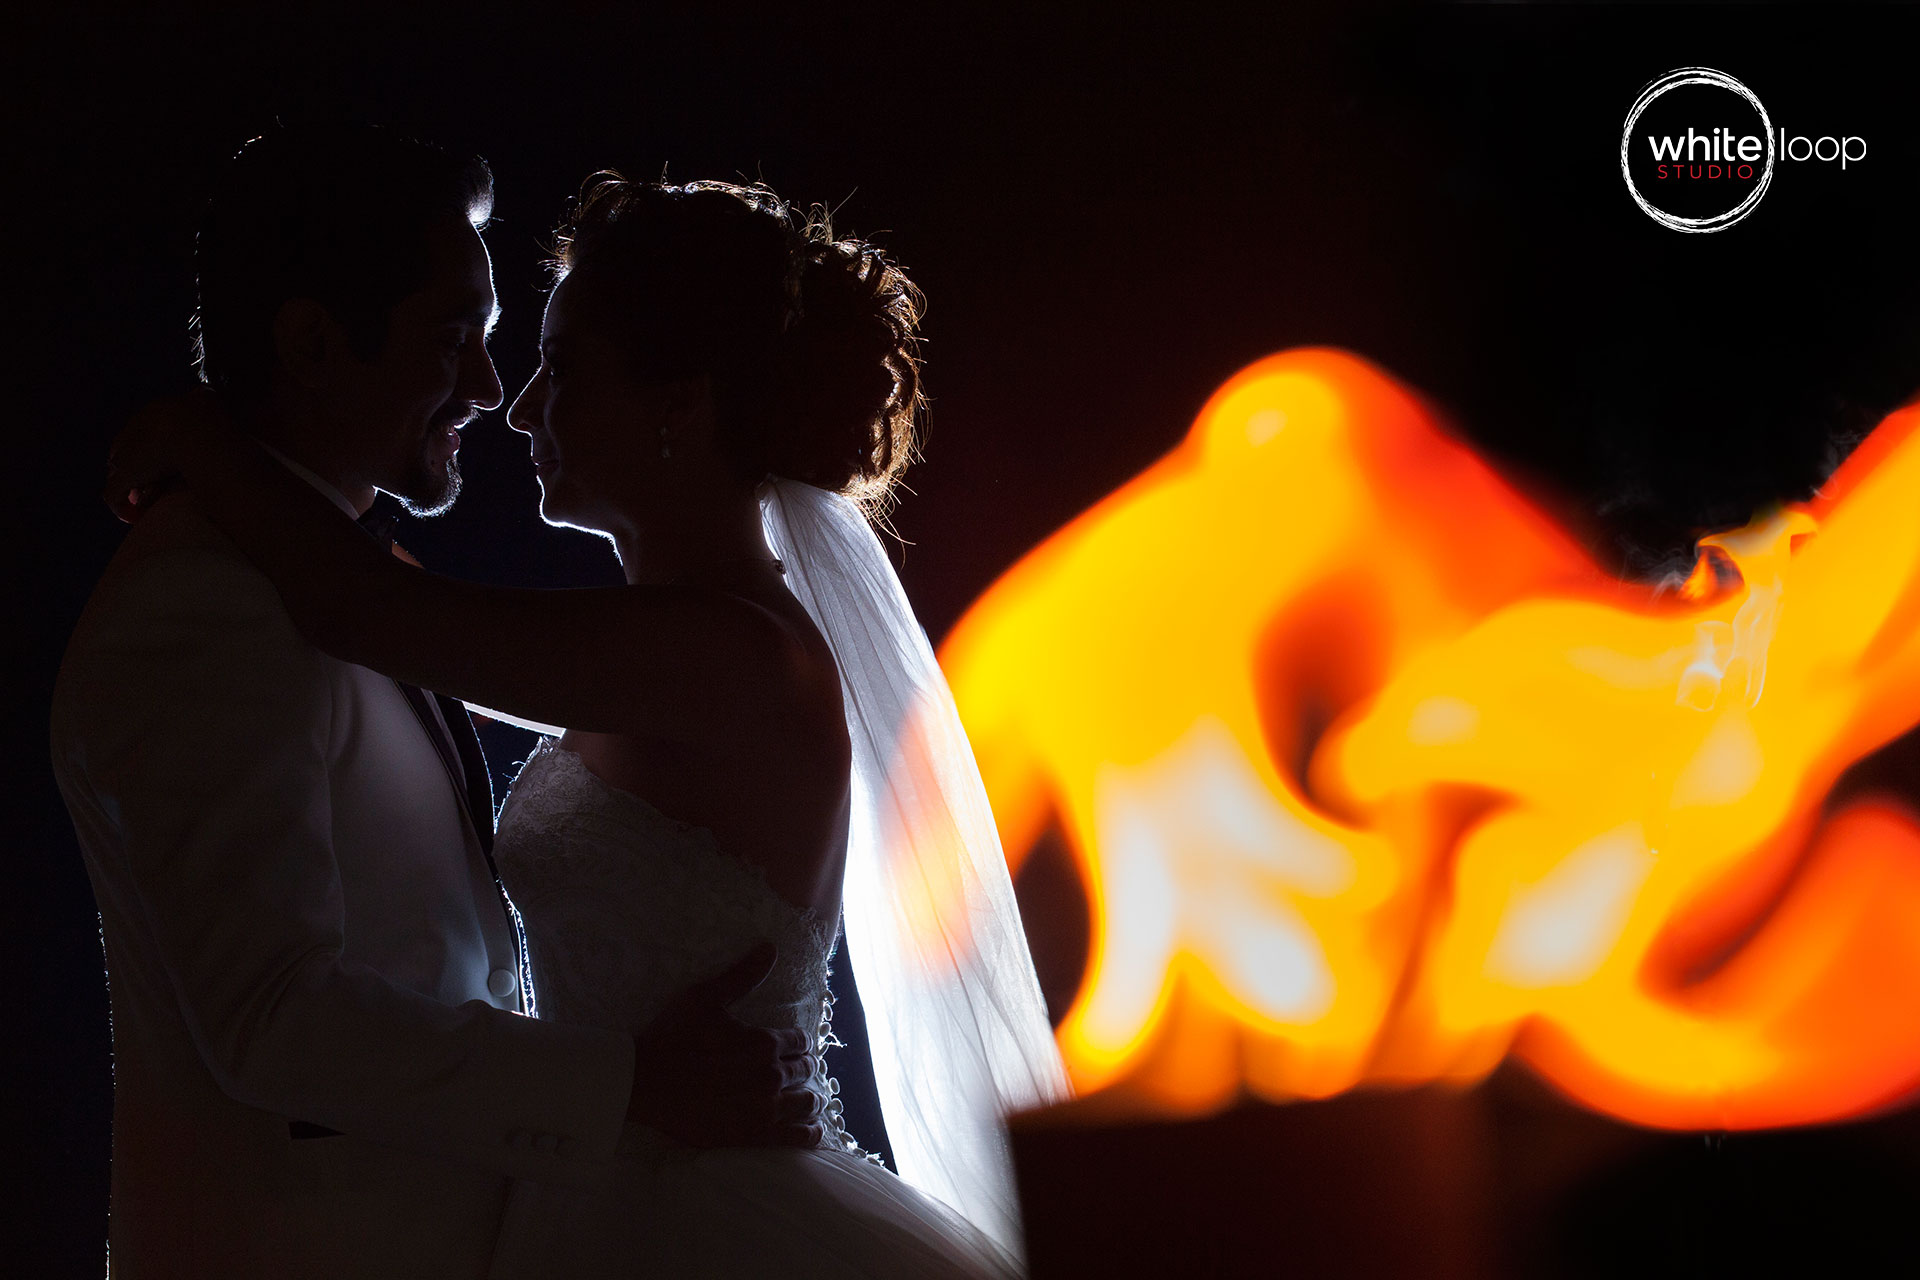 Groom and bride embracing eye to eye in a dark room with a lamp, keeping the couple against the light, exposing their silhouettes.